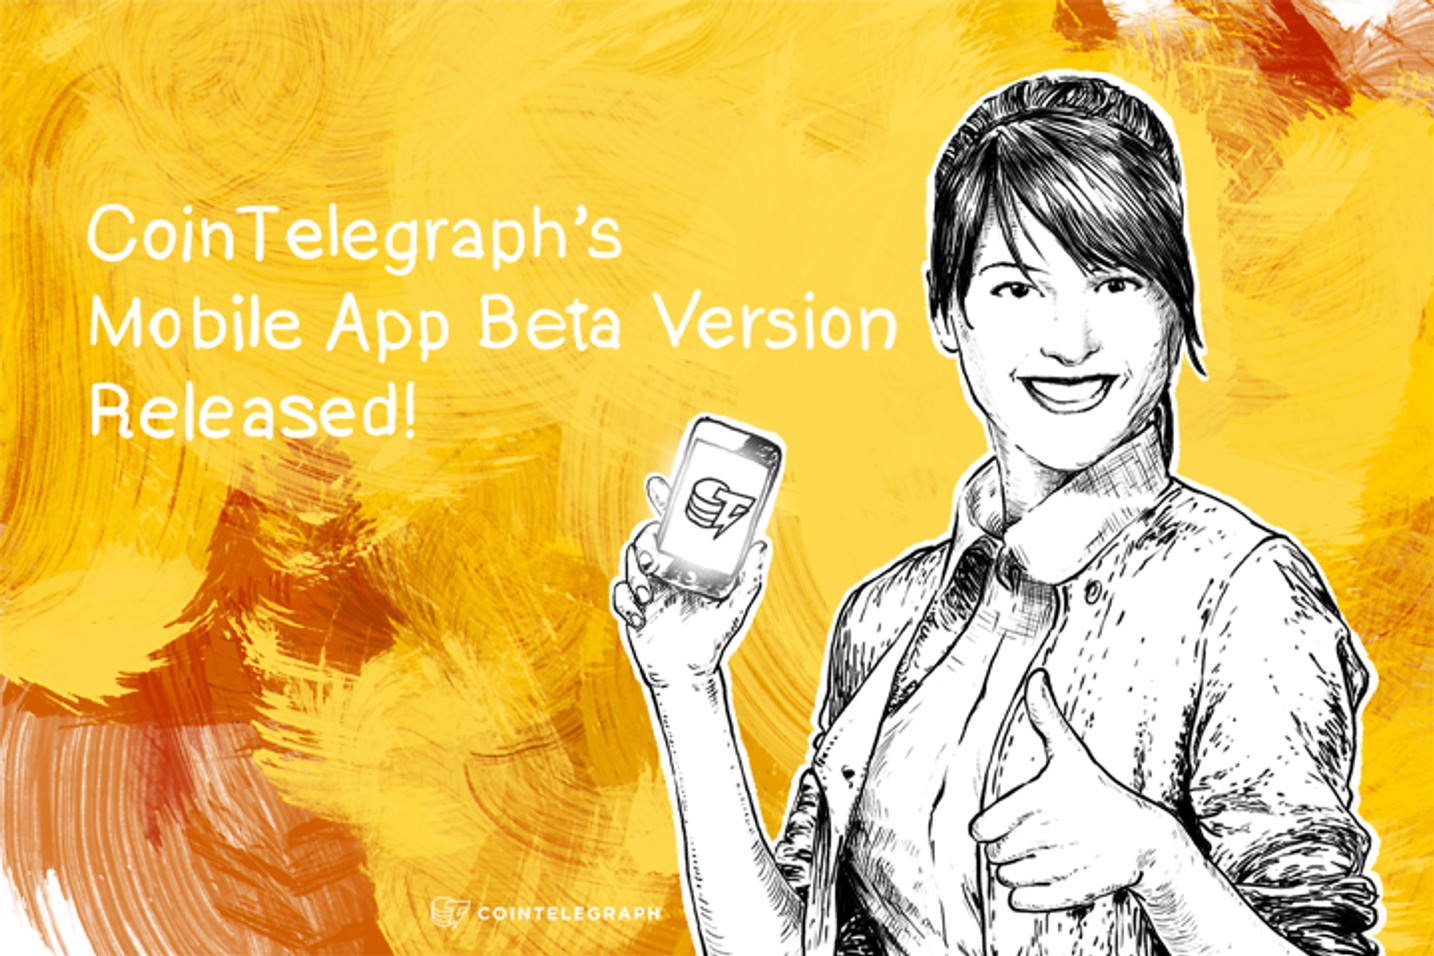 Cointelegraph's Mobile App Beta Version Released!